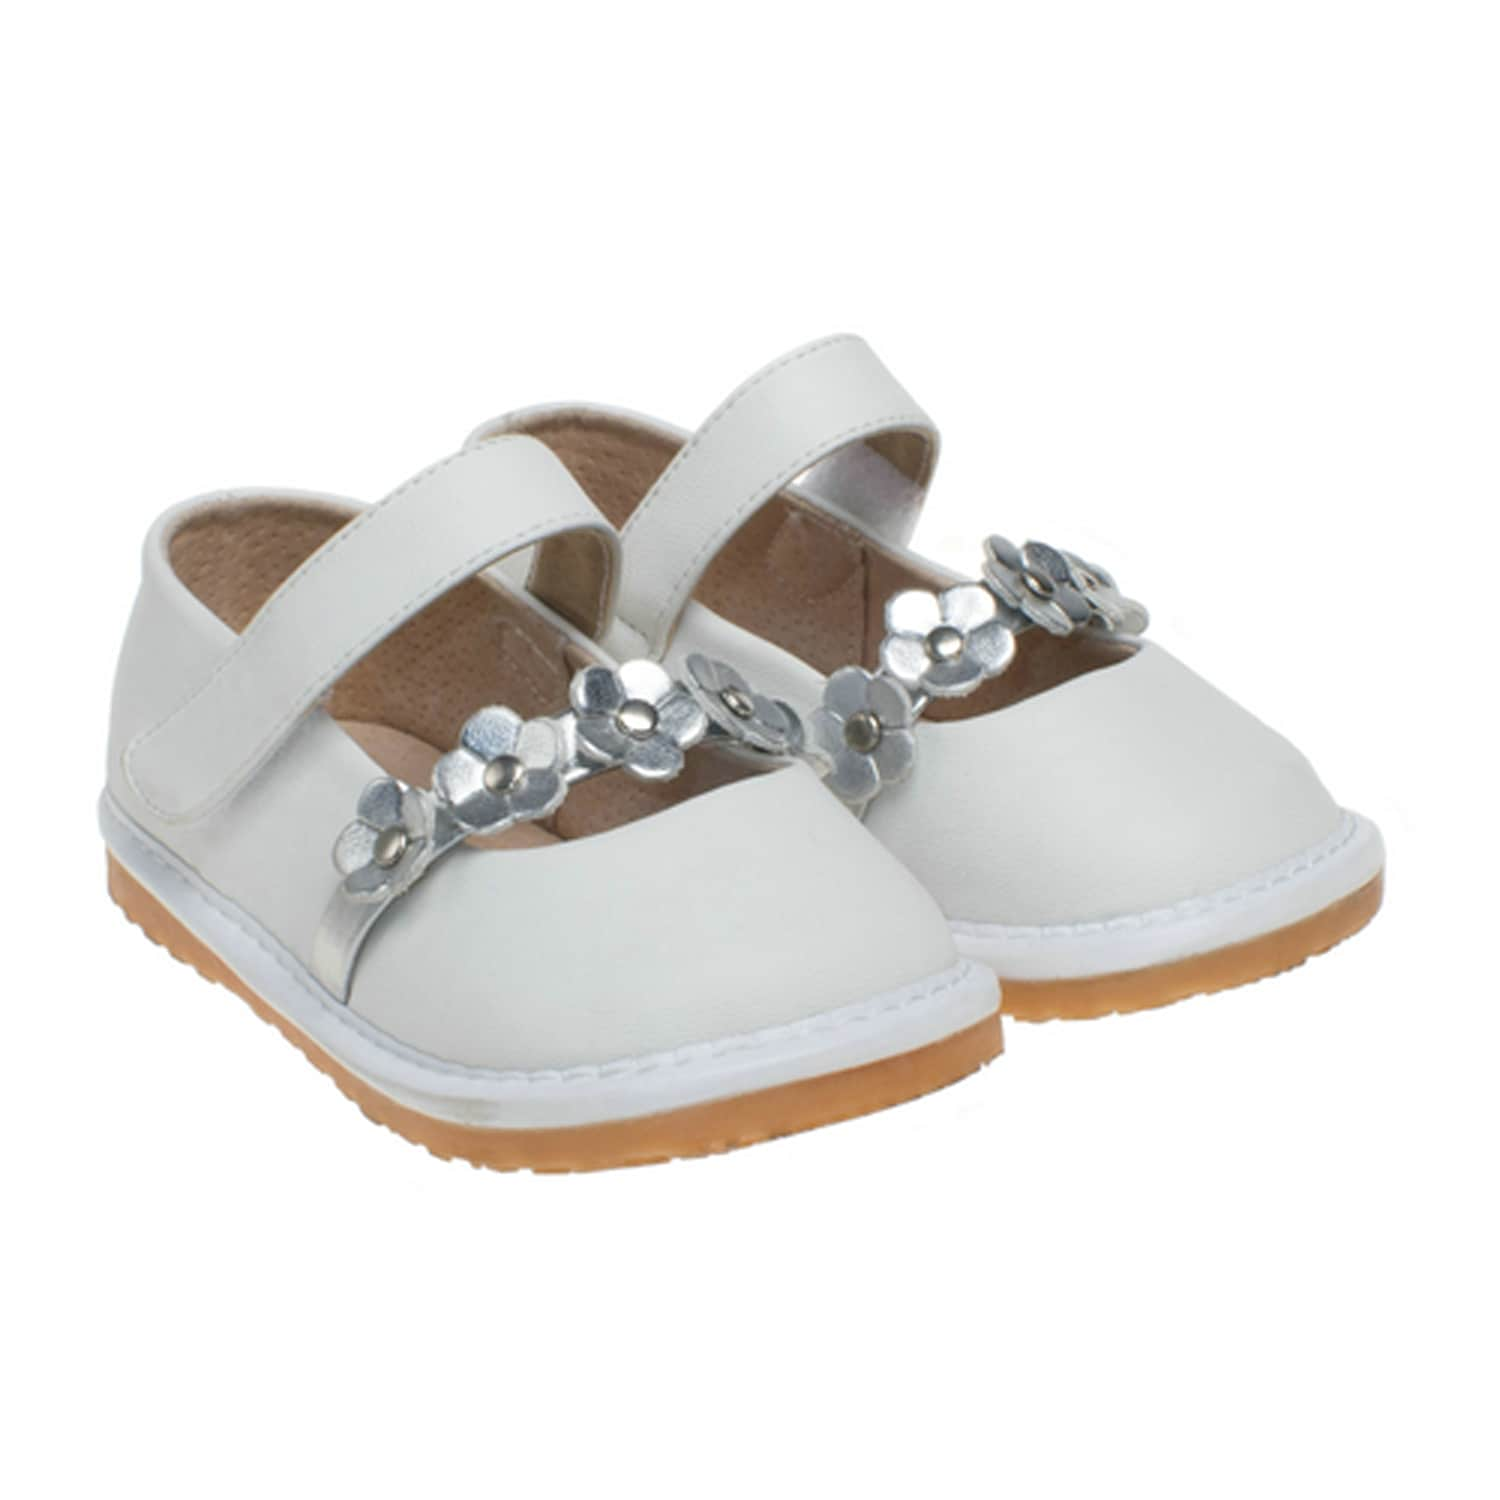 Little Blue Lamb Toddler SQ Series White Leather Squeaky Shoes